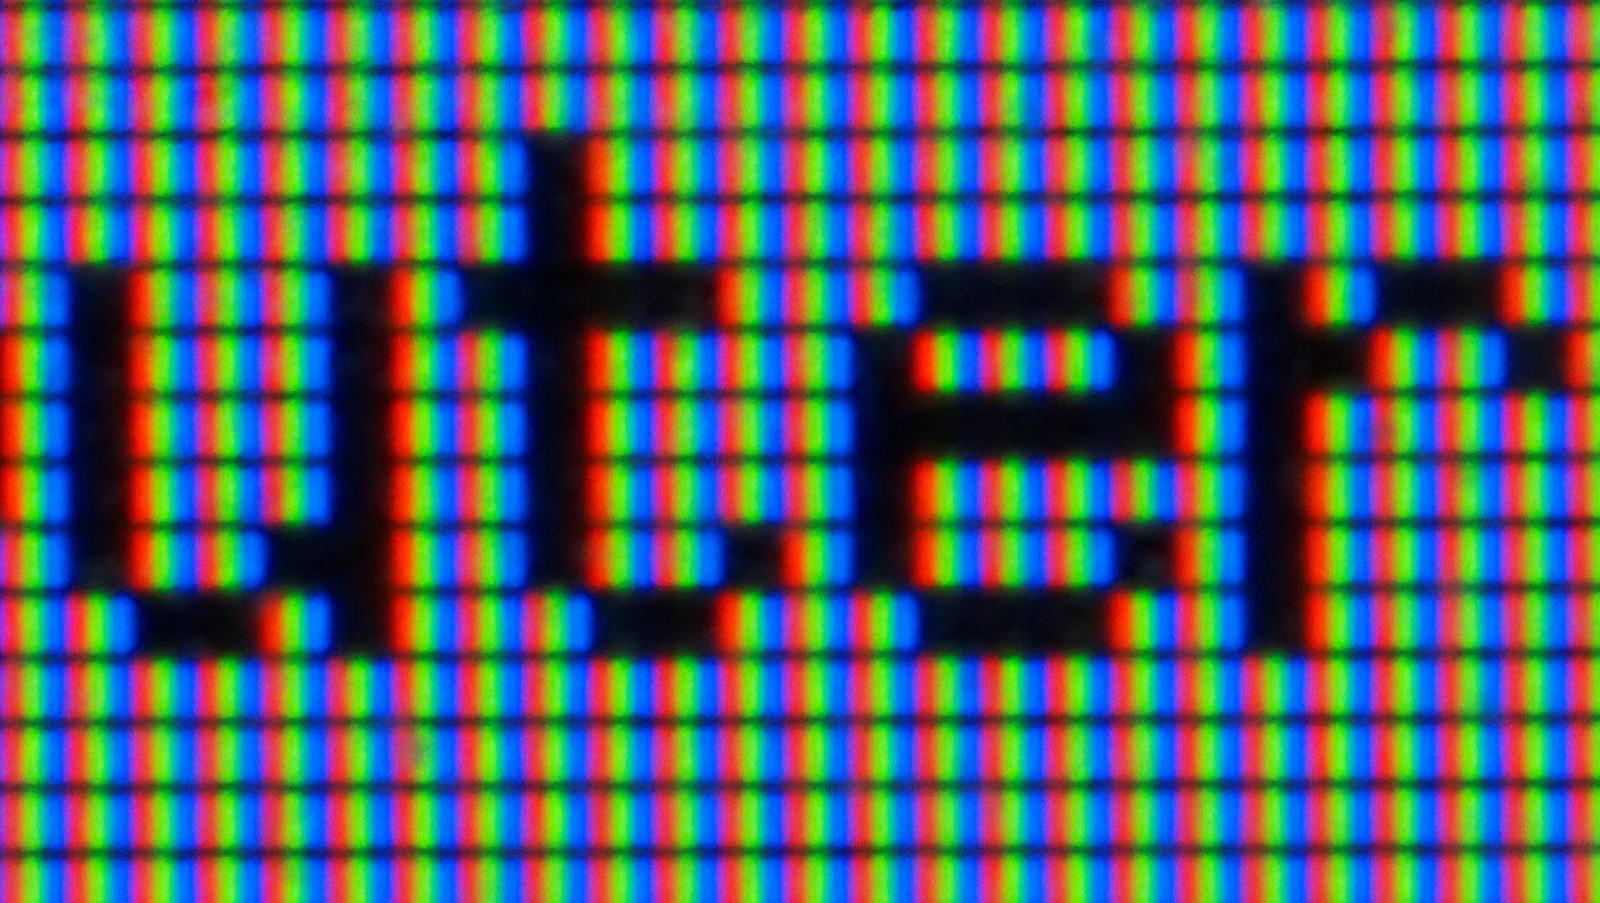 Monitor-1-detail.jpeg